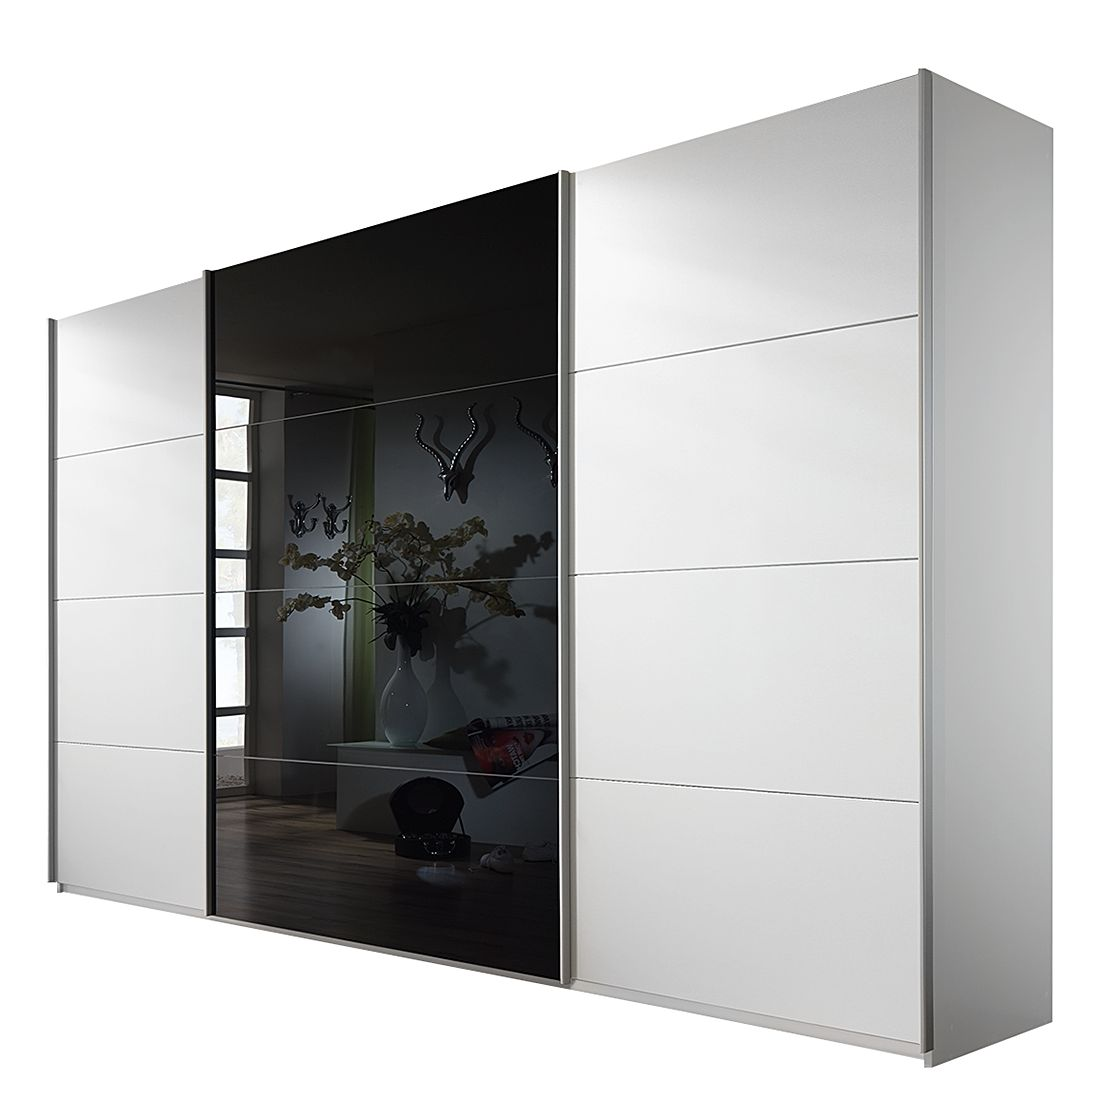 schwebet renschrank quadra alpinwei schwarz schrankbreite 136 cm 2 t rig. Black Bedroom Furniture Sets. Home Design Ideas